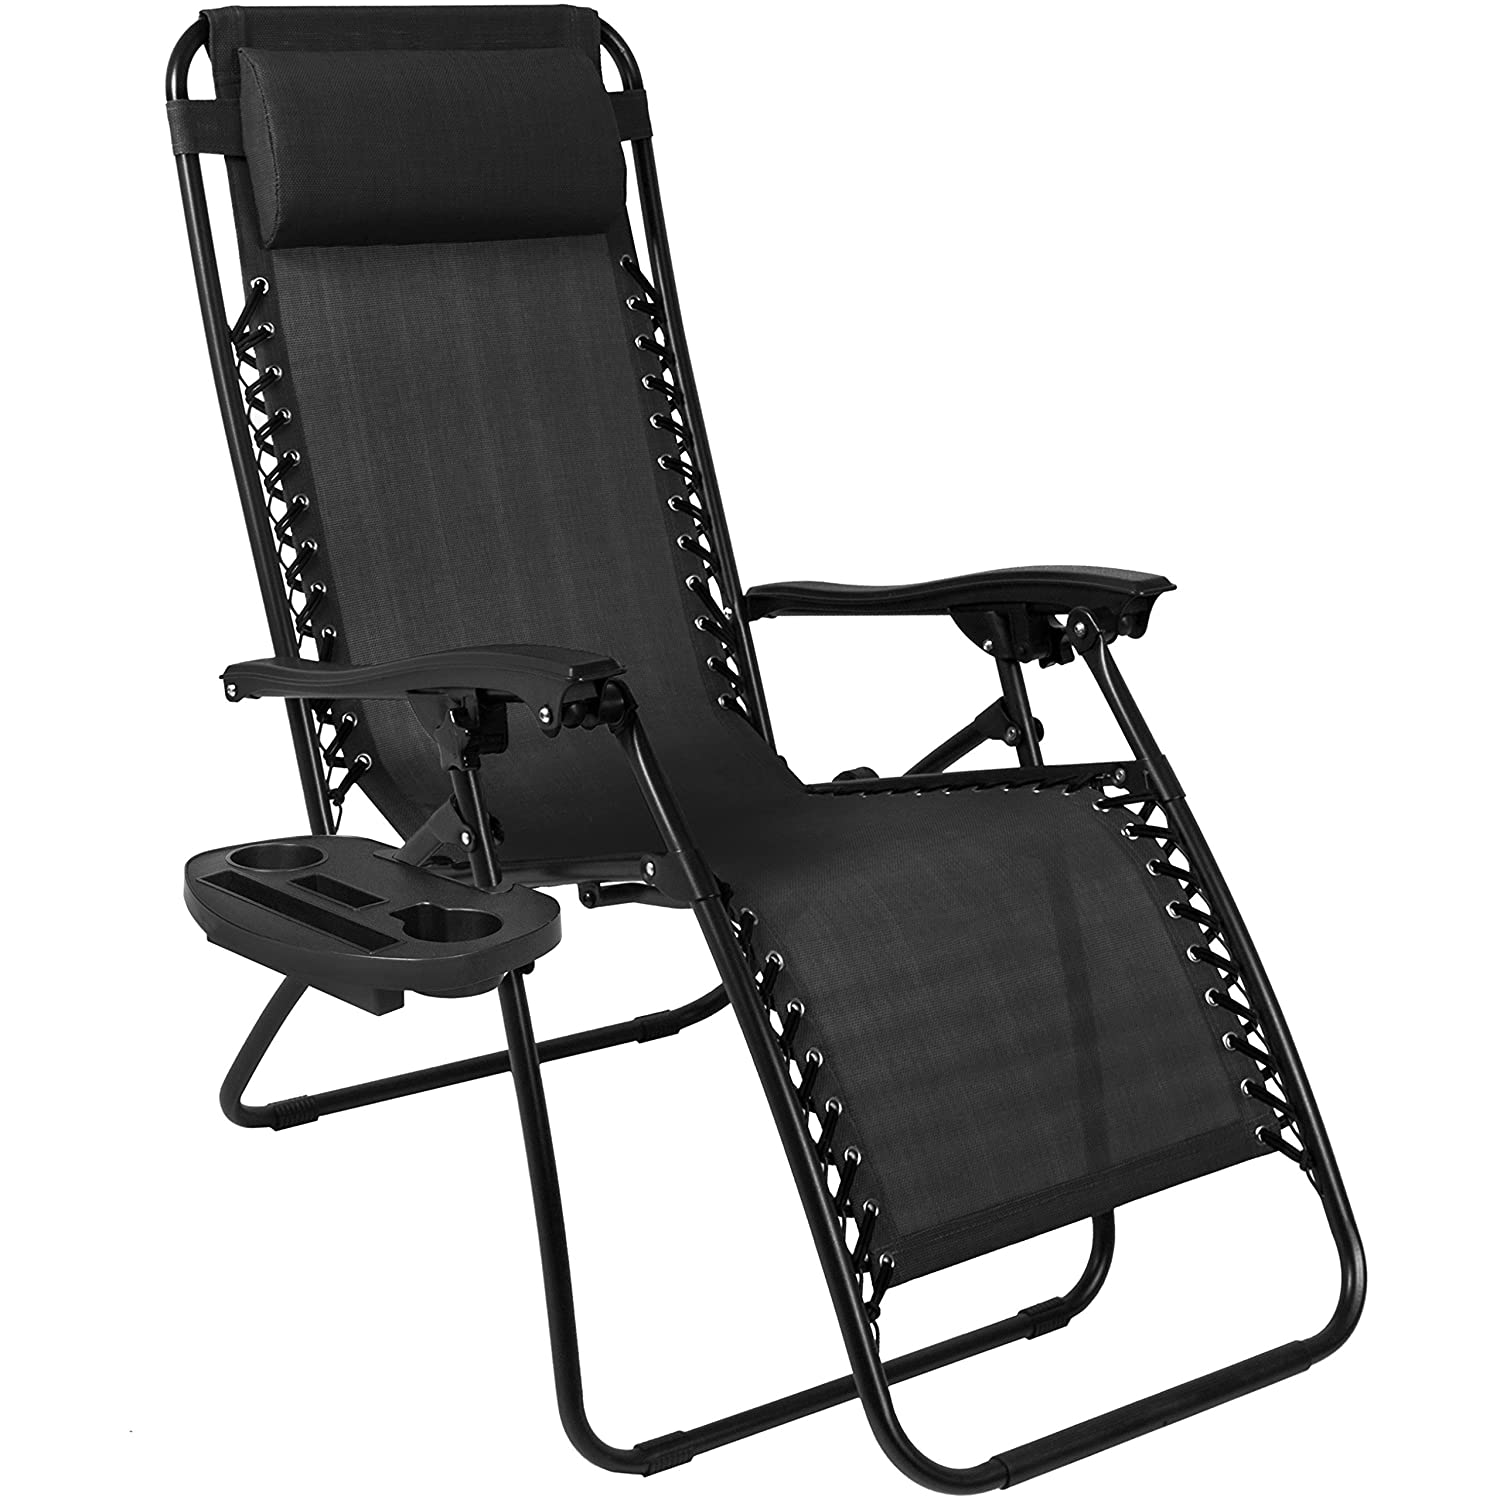 Amazon.com  Best Choice Products Zero Gravity Chairs Case Of (2) Black Lounge Patio Chairs Outdoor Yard Beach New  Garden u0026 Outdoor  sc 1 st  Amazon.com : reclining lounge chairs - islam-shia.org